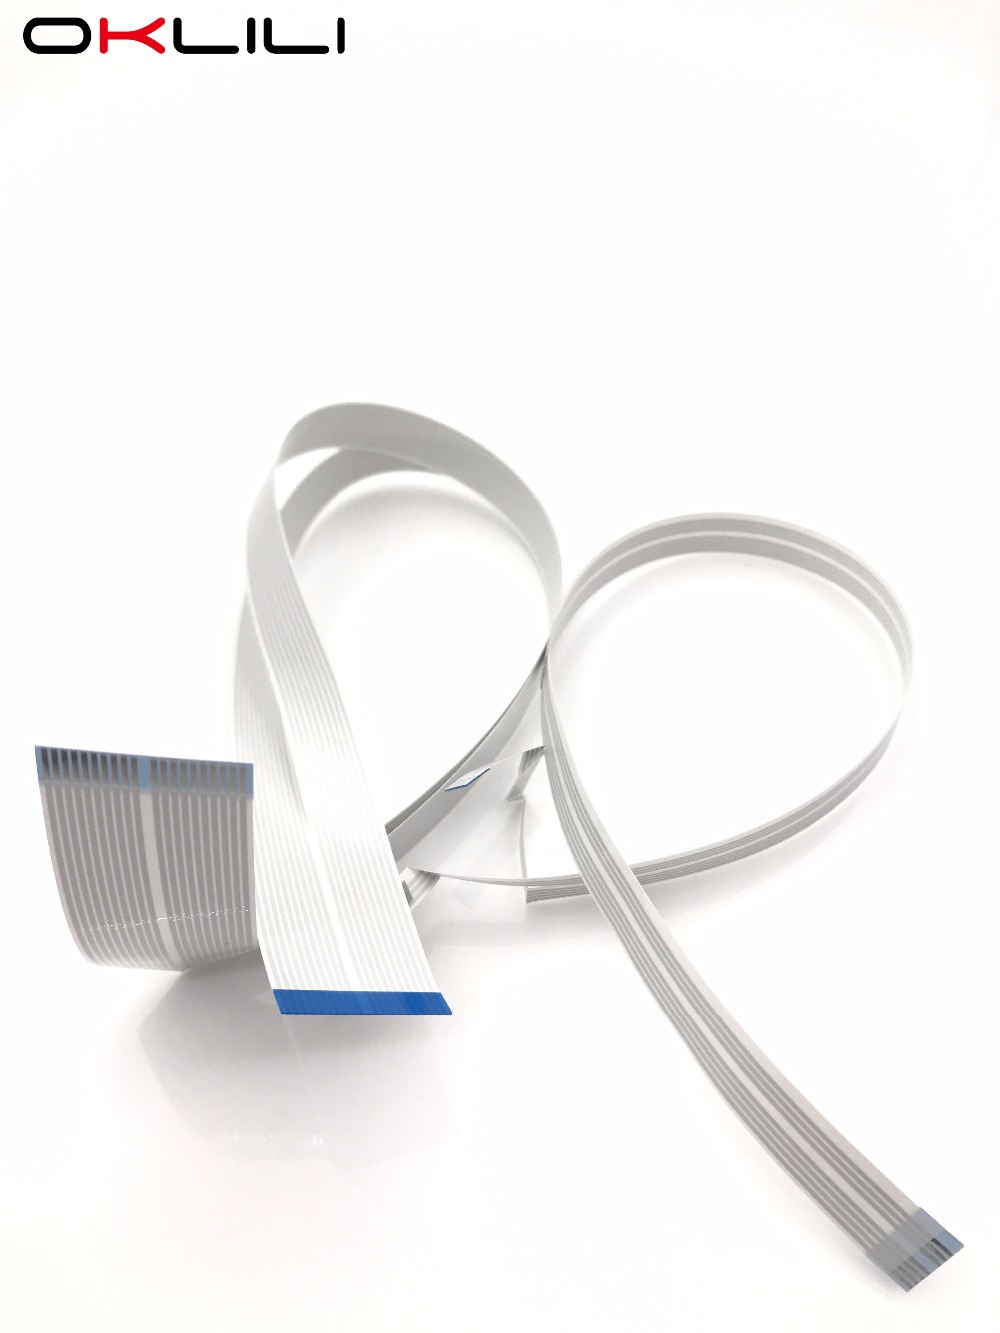 Print <font><b>Head</b></font> Cable Carriage Sensor Cable for <font><b>Epson</b></font> L110 L111 L120 L130 L132 L210 L211 <font><b>L220</b></font> L222 L300 L301 L303 L310 L350 L351 L353 image